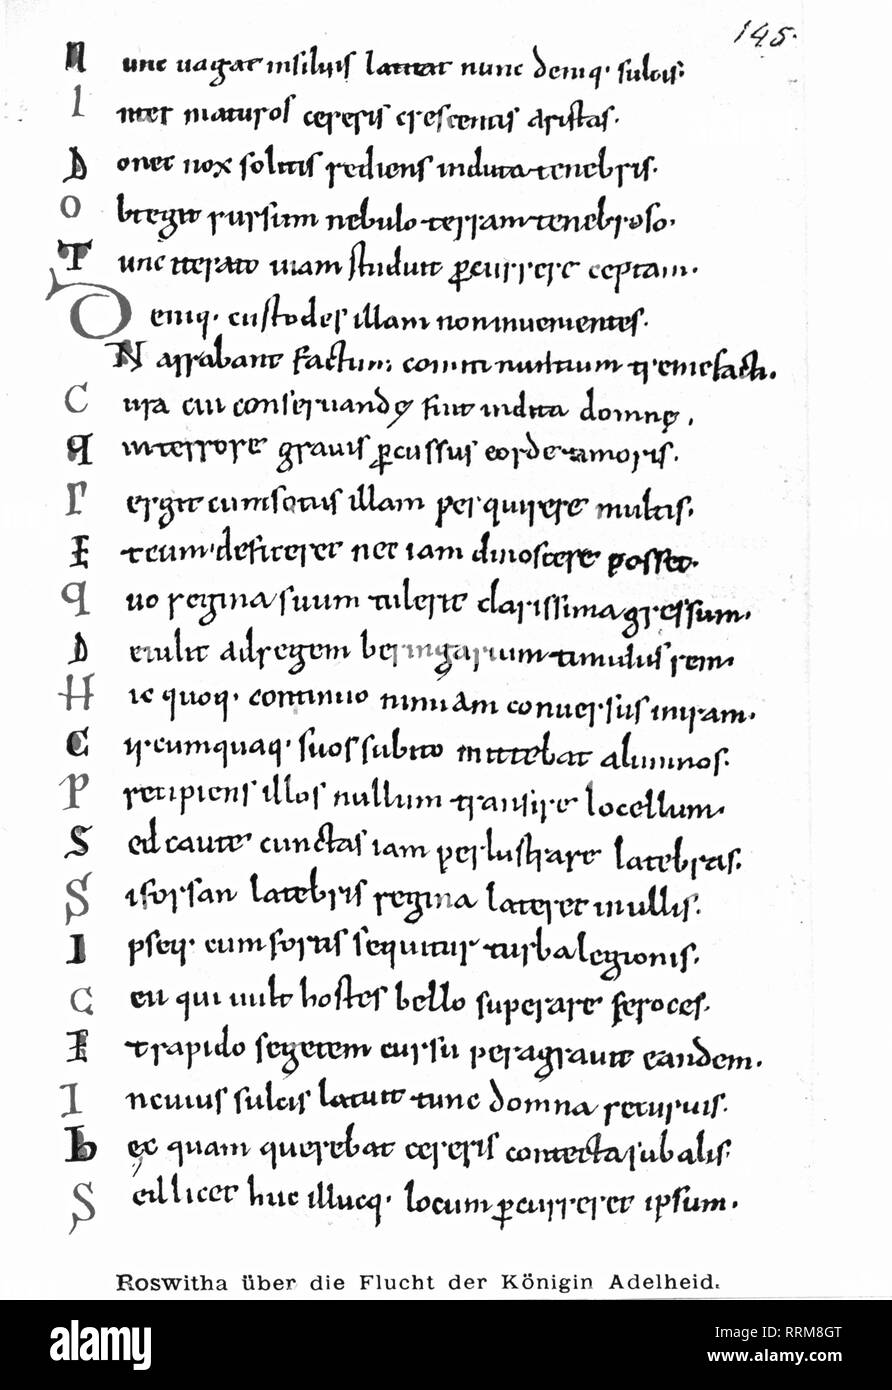 Hrotsvitha, circa 935 - after 973, German poetess, works, 'Gesta Ottonis', about the escape of queen Adelaide of Italy, 10th / 11th century, Additional-Rights-Clearance-Info-Not-Available - Stock Image